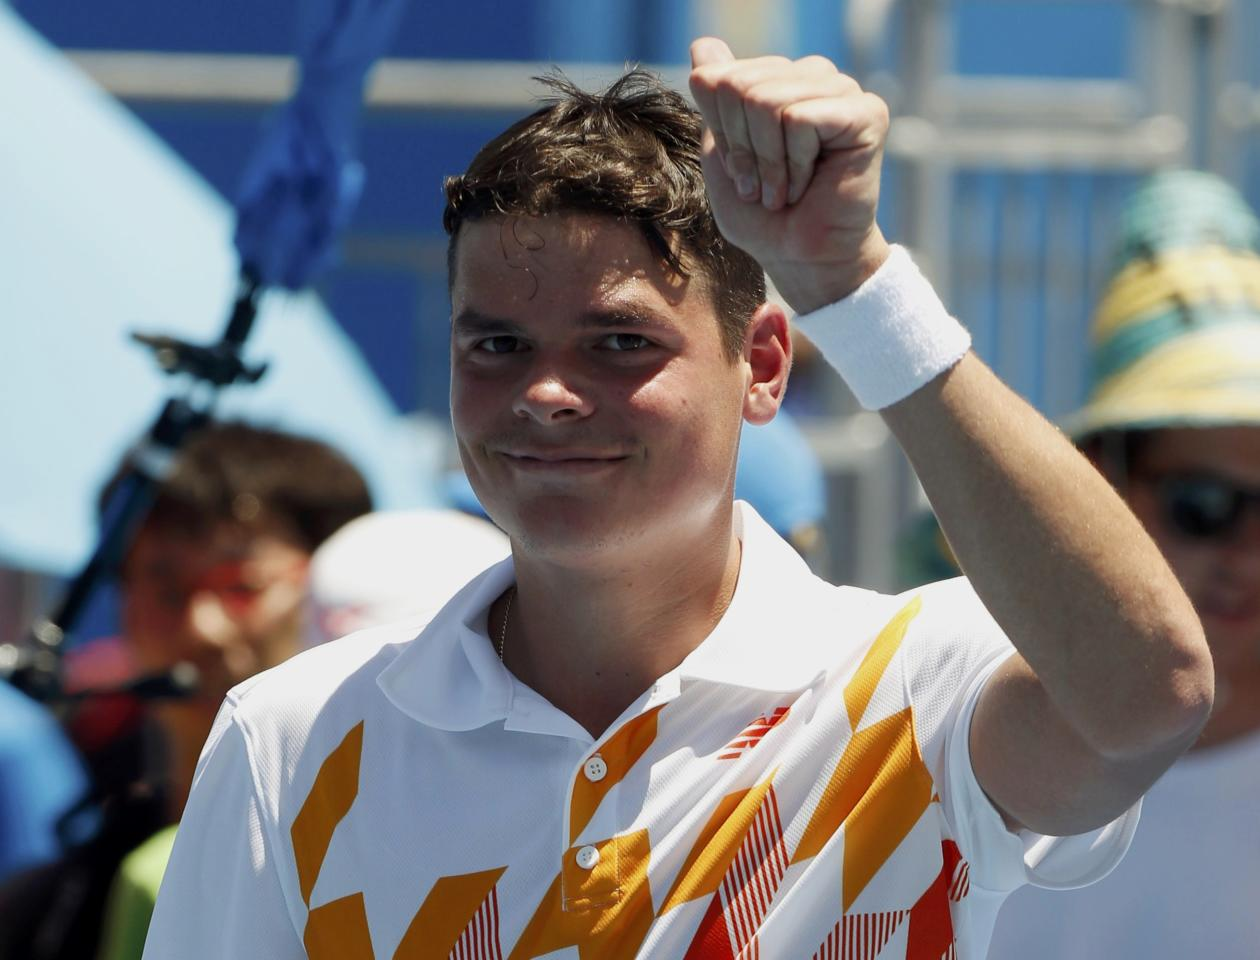 Milos Raonic of Canada acknowledges the crowd after defeating Daniel Gimeno-Traver of Spain in their men's singles match at the Australian Open 2014 tennis tournament in Melbourne January 14, 2014. REUTERS/Brandon Malone (AUSTRALIA - Tags: SPORT TENNIS)